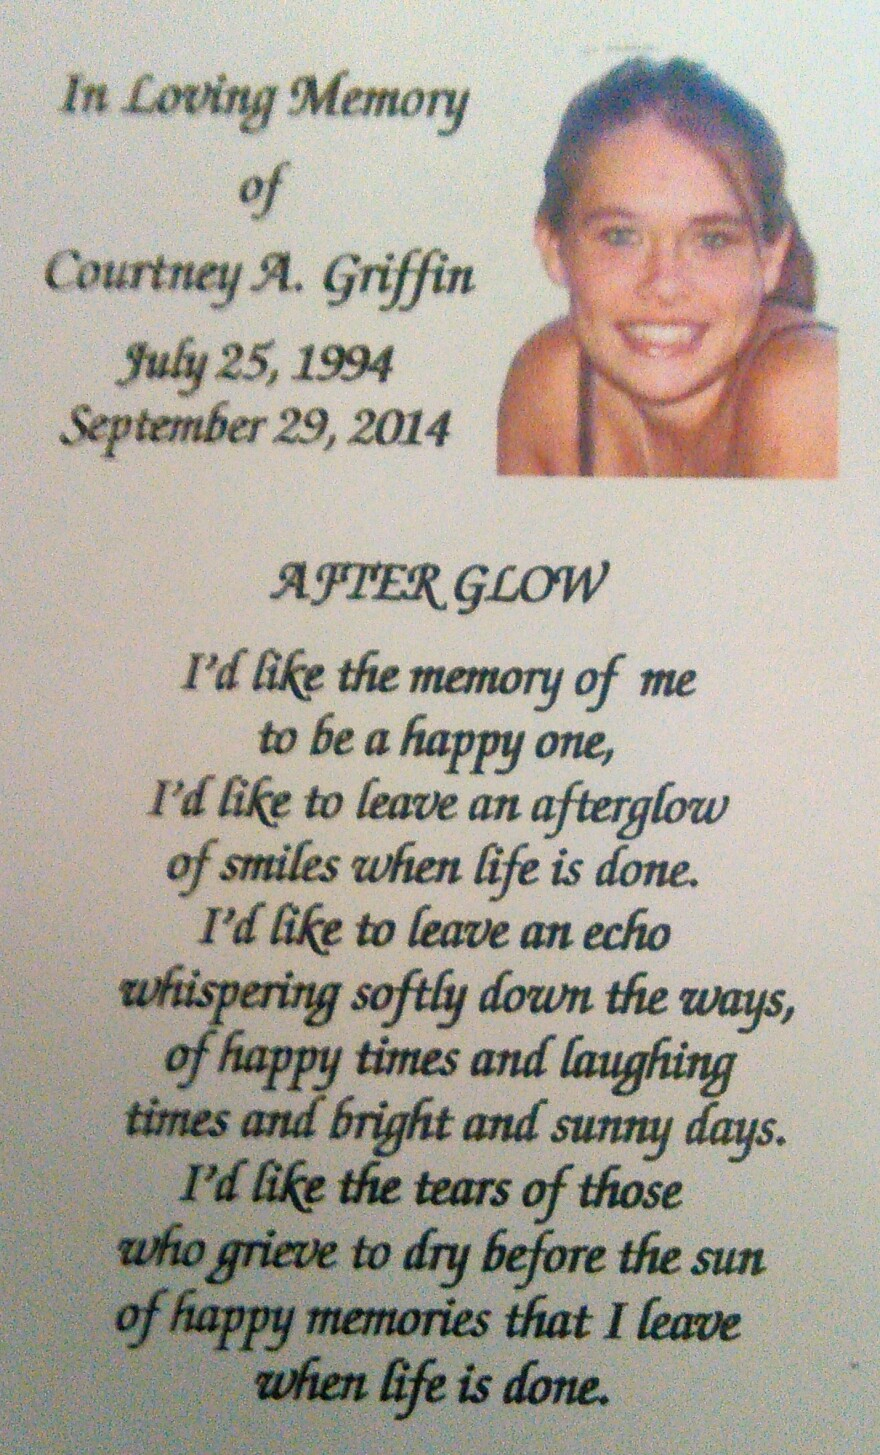 A prayer card from the funeral of Courtney Griffin.